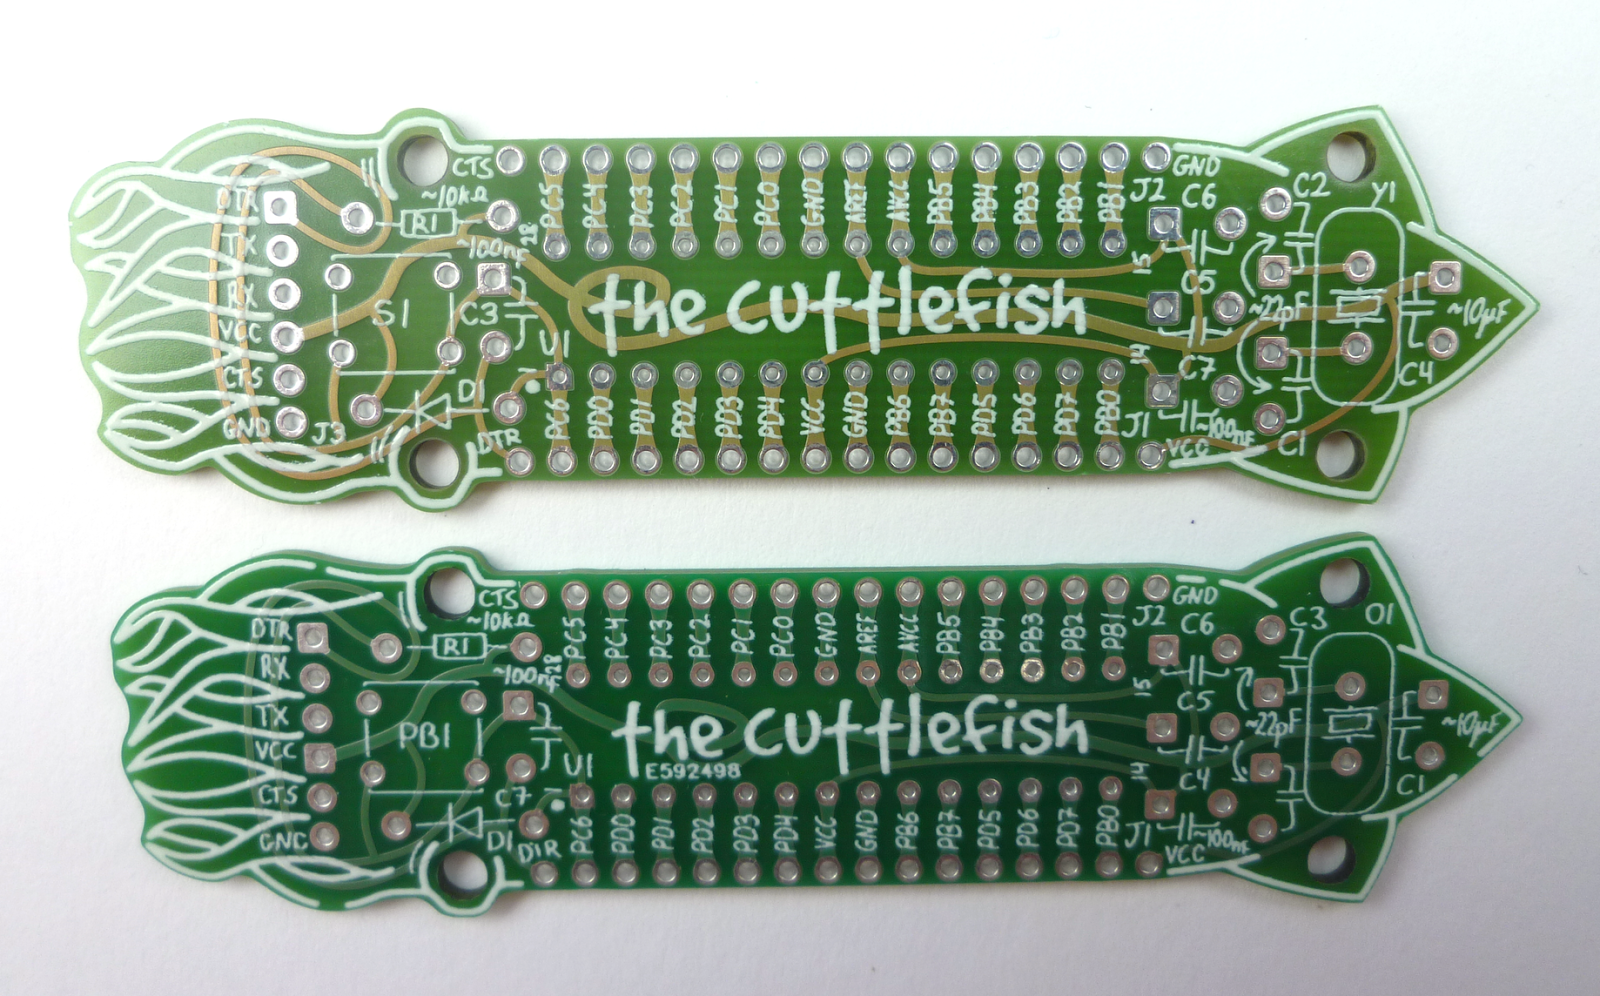 The top side of 'cuttlefish'. The bottom one is the prototype run (notice Eurocircuit's number placed inconviniently in the visual focal point of the board). The top one is the production run, where the number is placed at the bottom, with some silkscreen fixes.